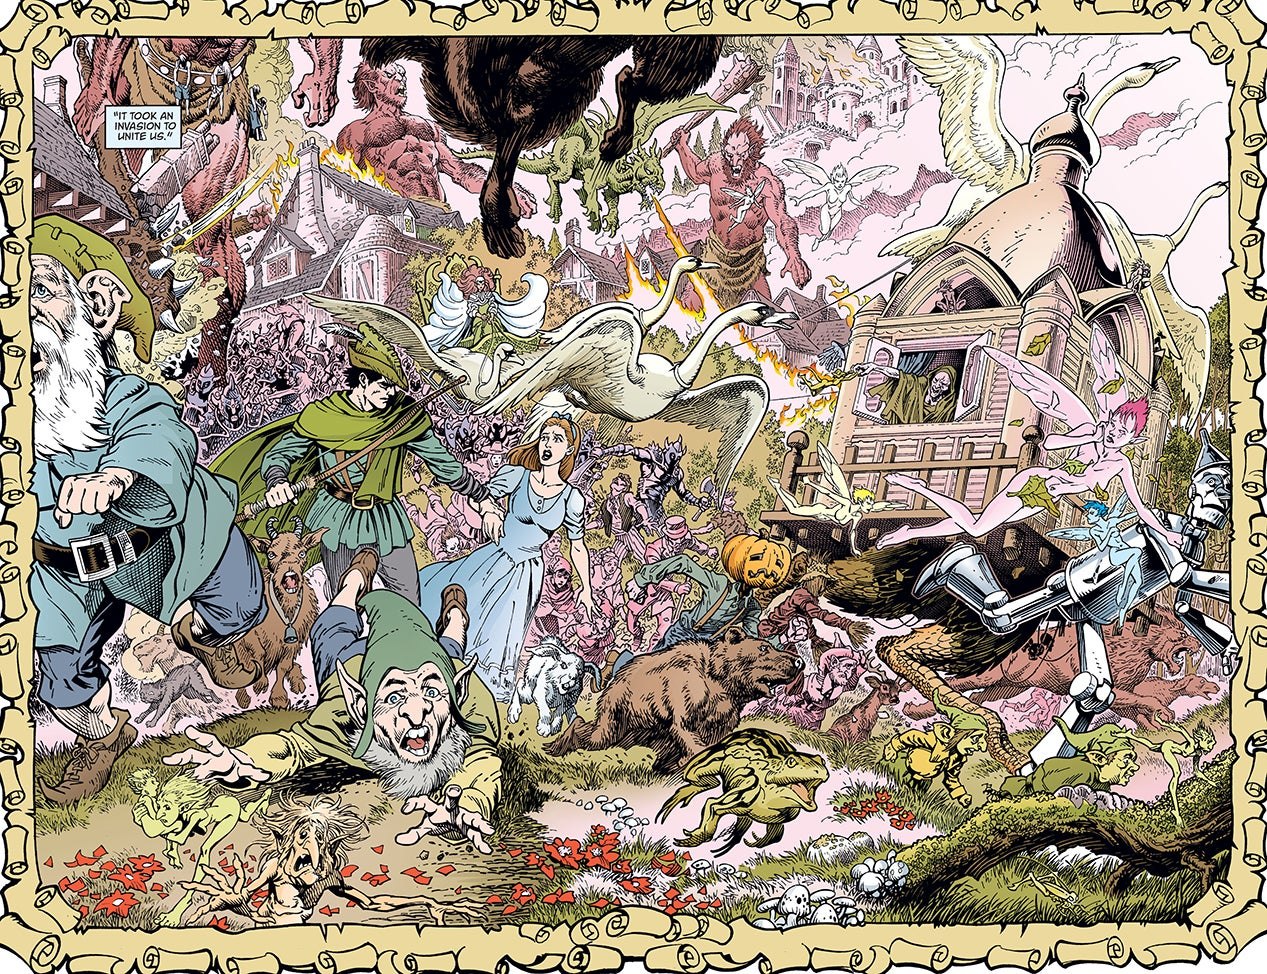 Fables: The Kotaku Comic Review